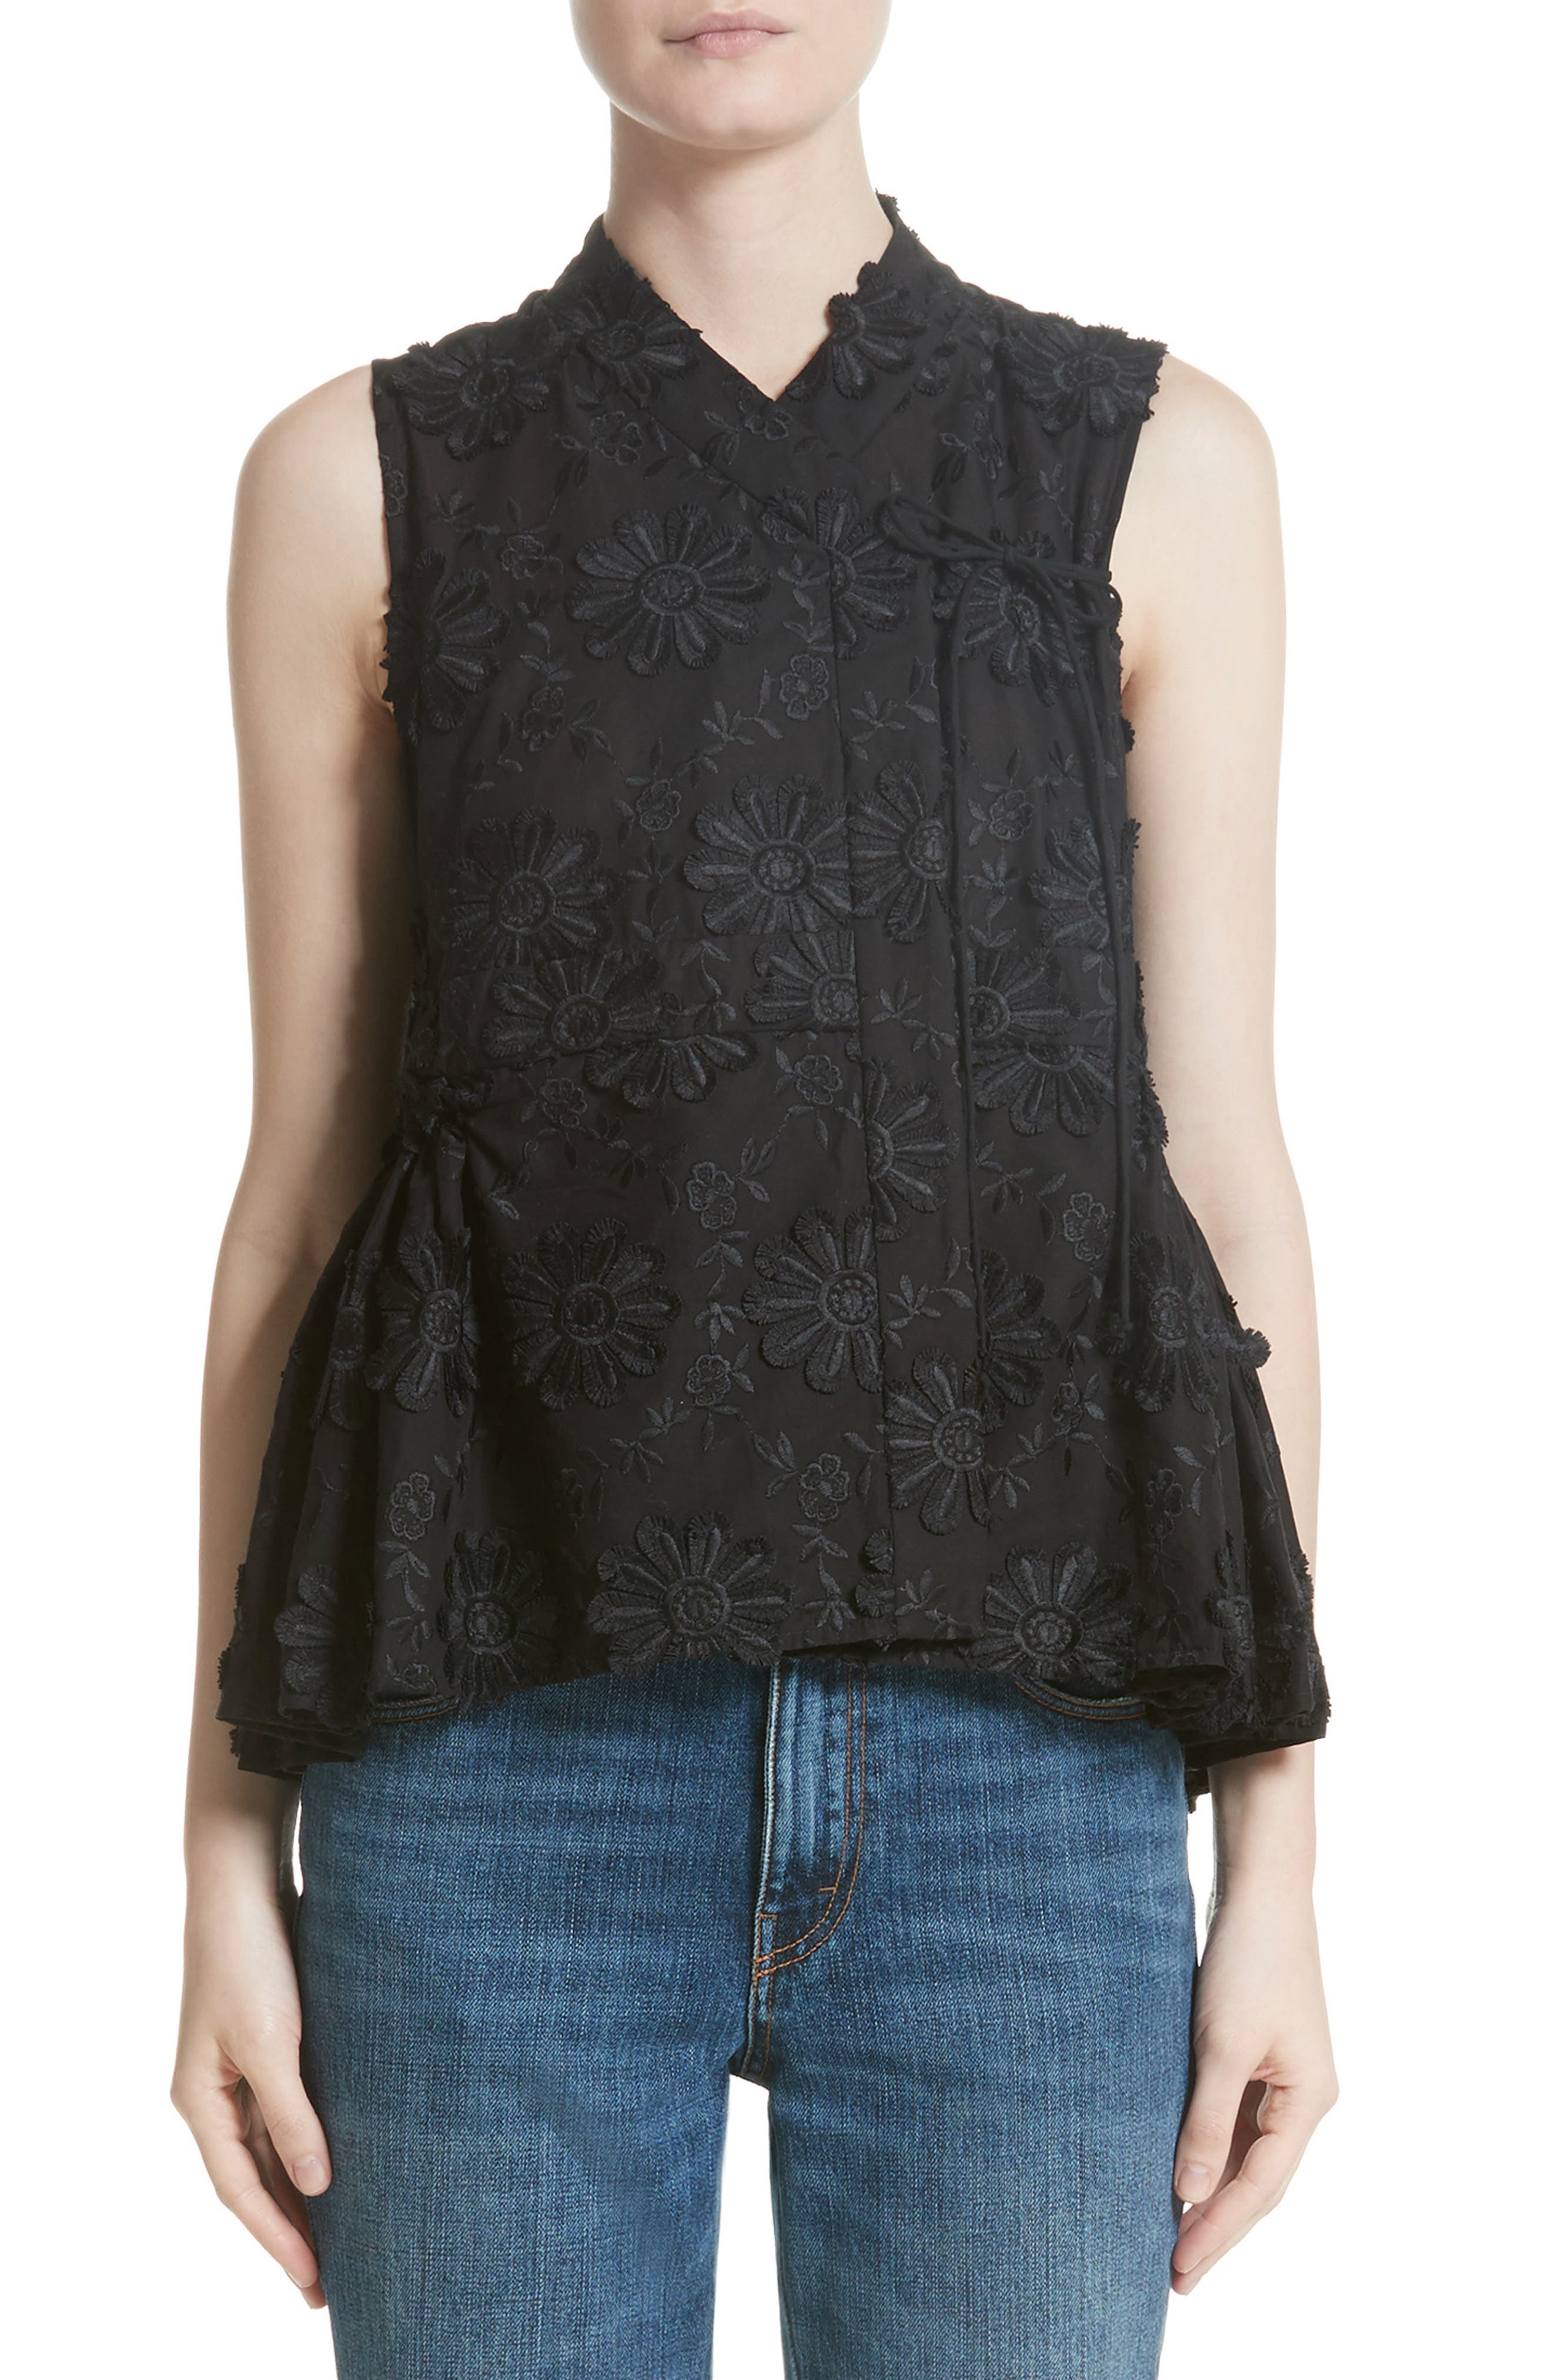 Main Image - Co Floral Embroidered Peplum top